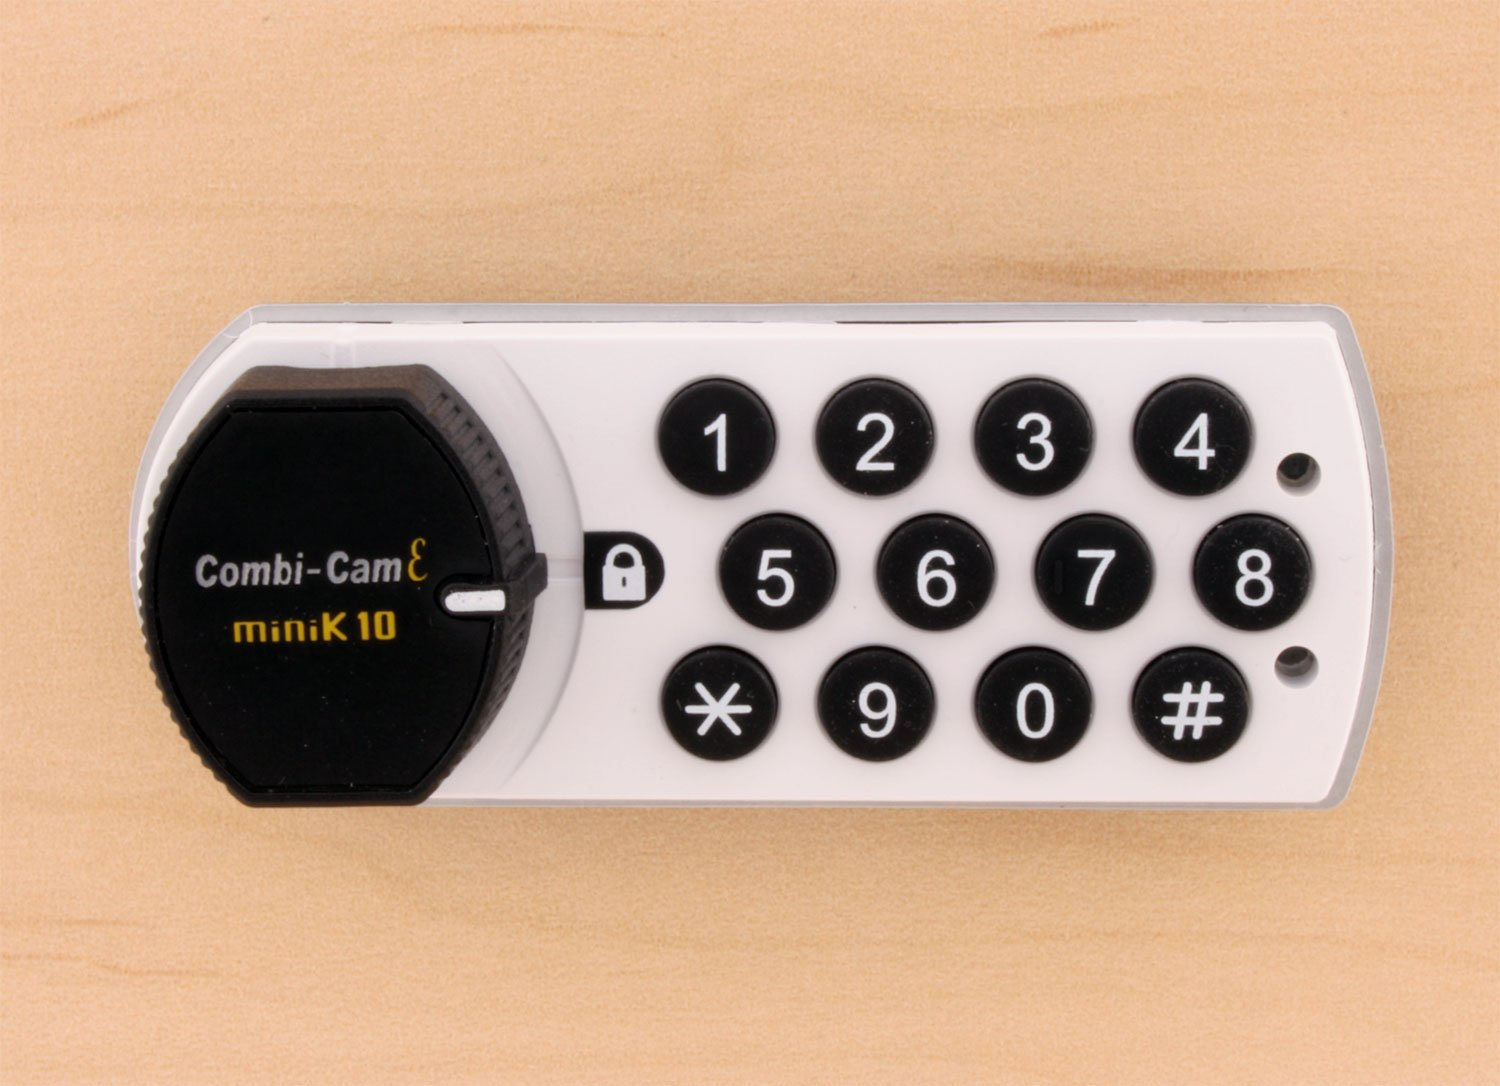 FJM Security Products 7910-K10-HRH-WHT Combi Cam E Electronic Cabinet Lock, White by FJM Security (Image #5)